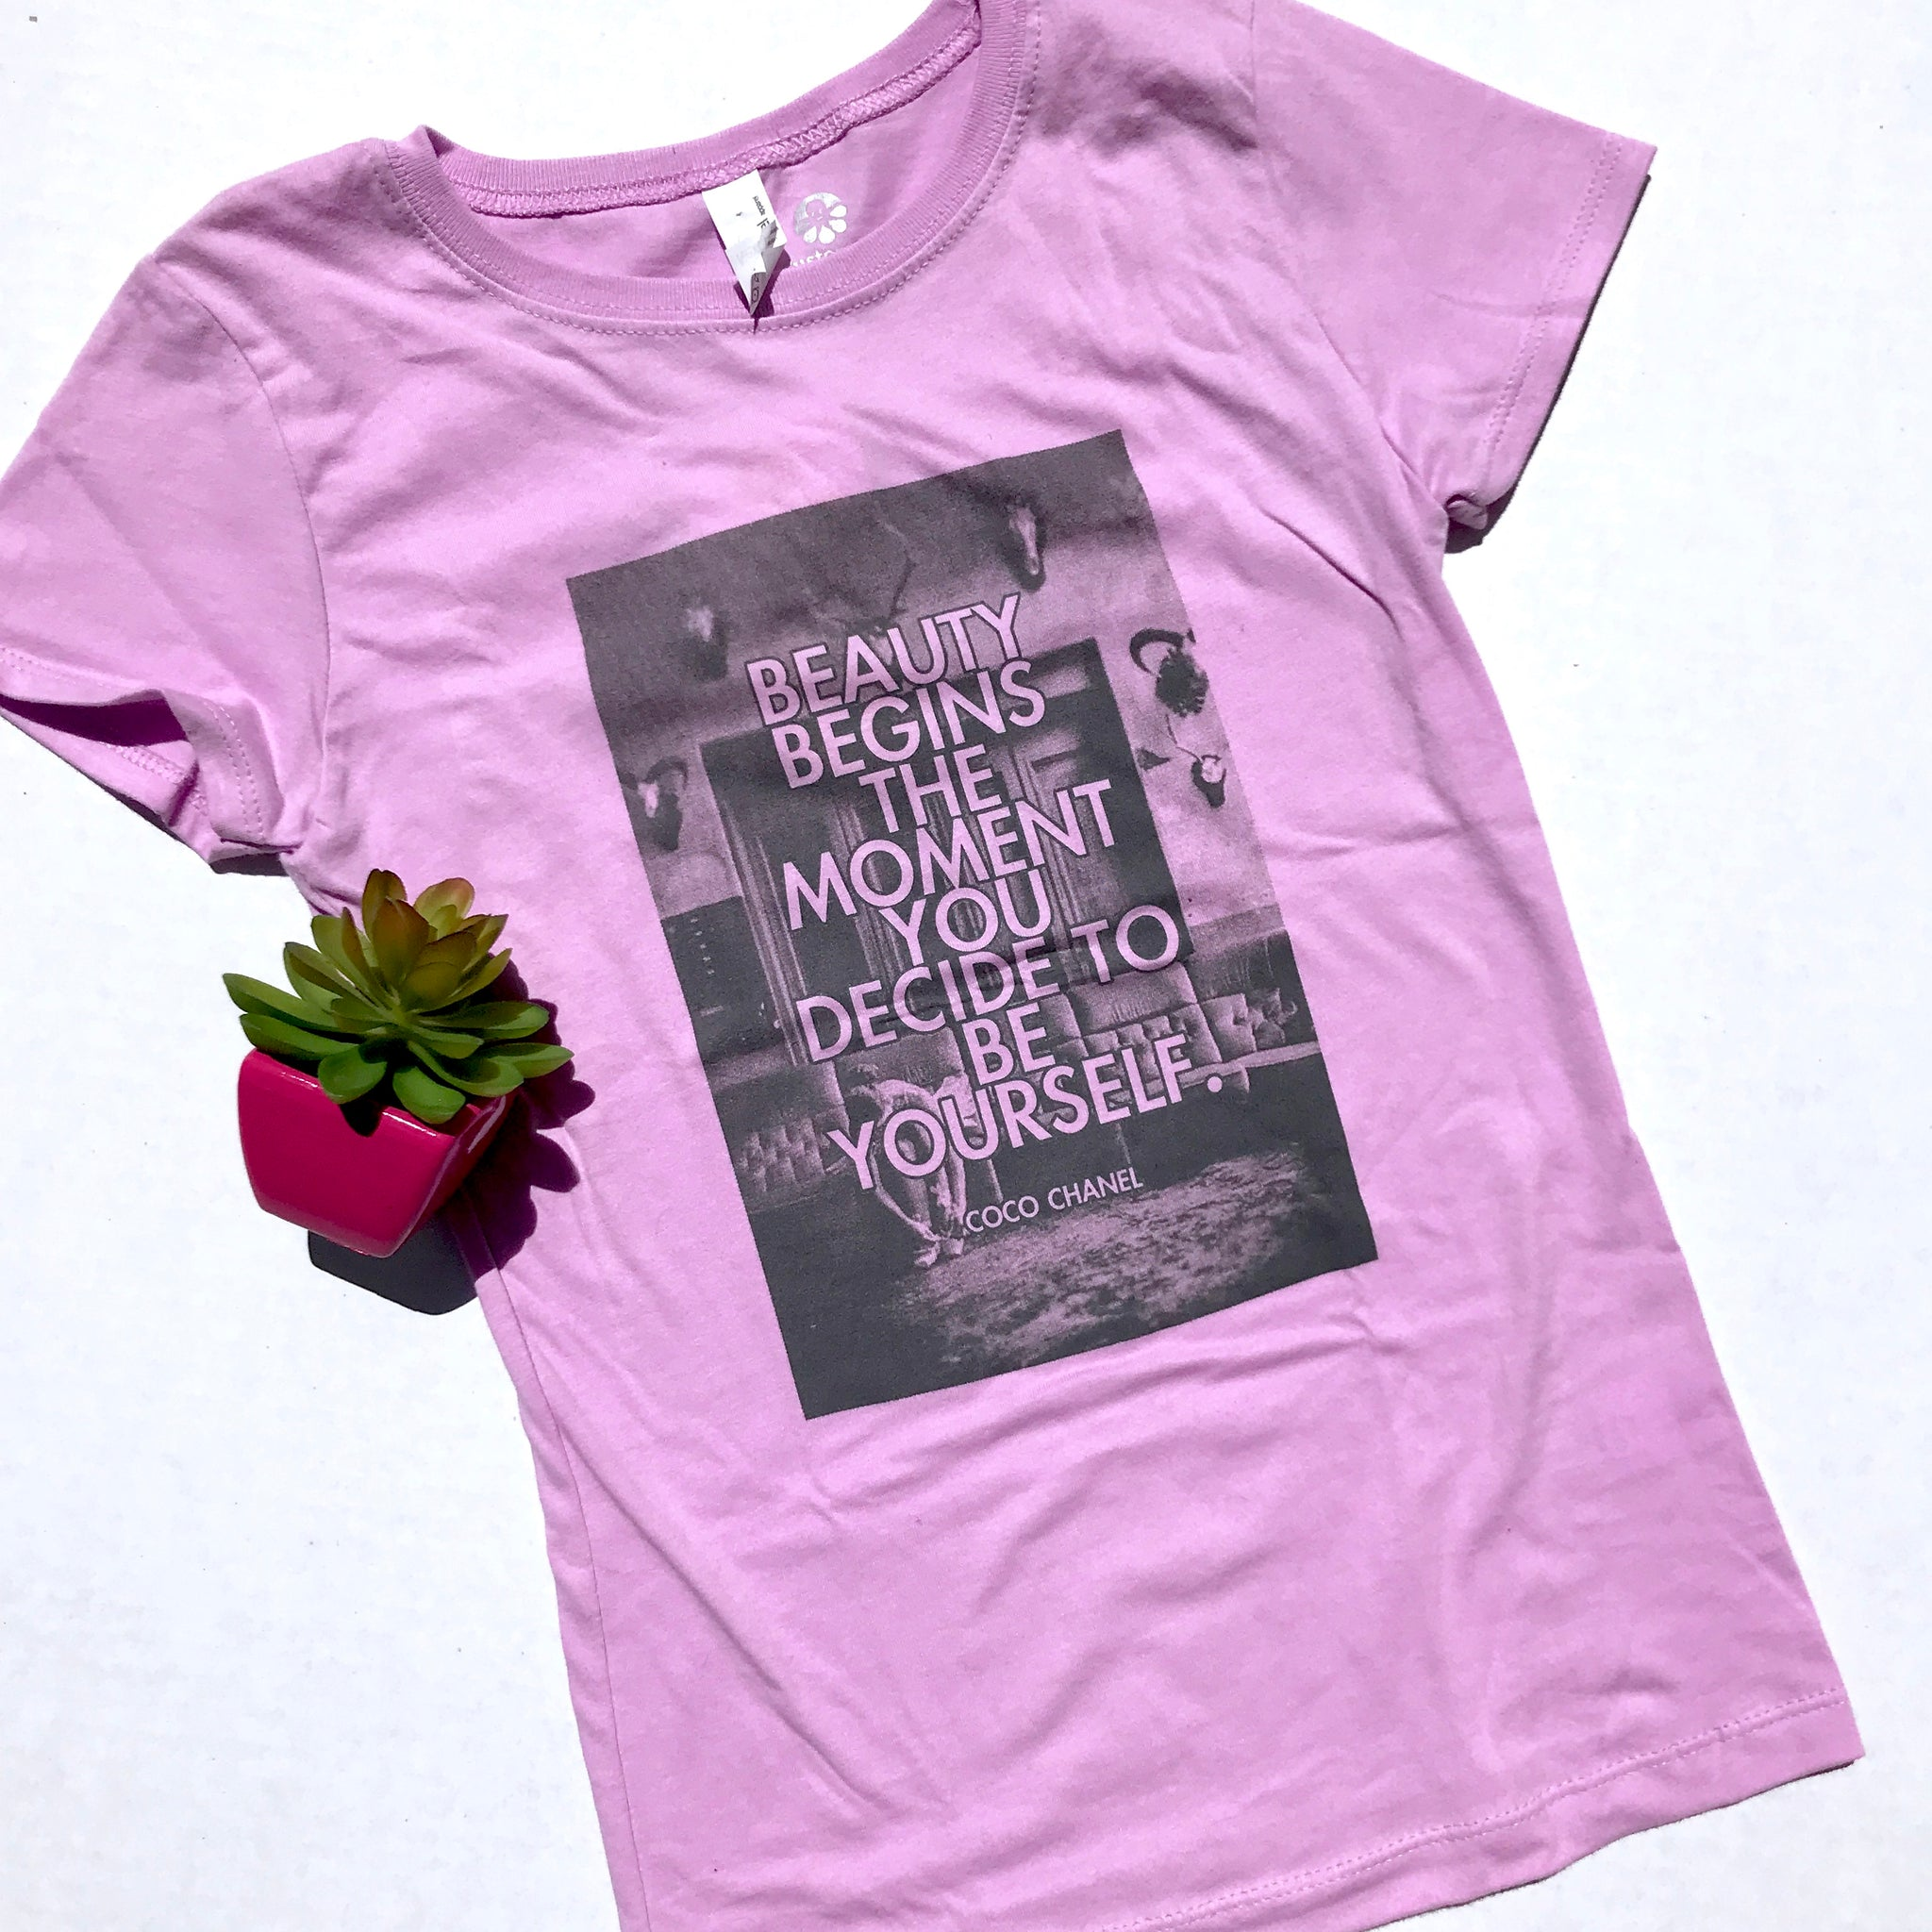 Being Yourself is Beautiful Tee